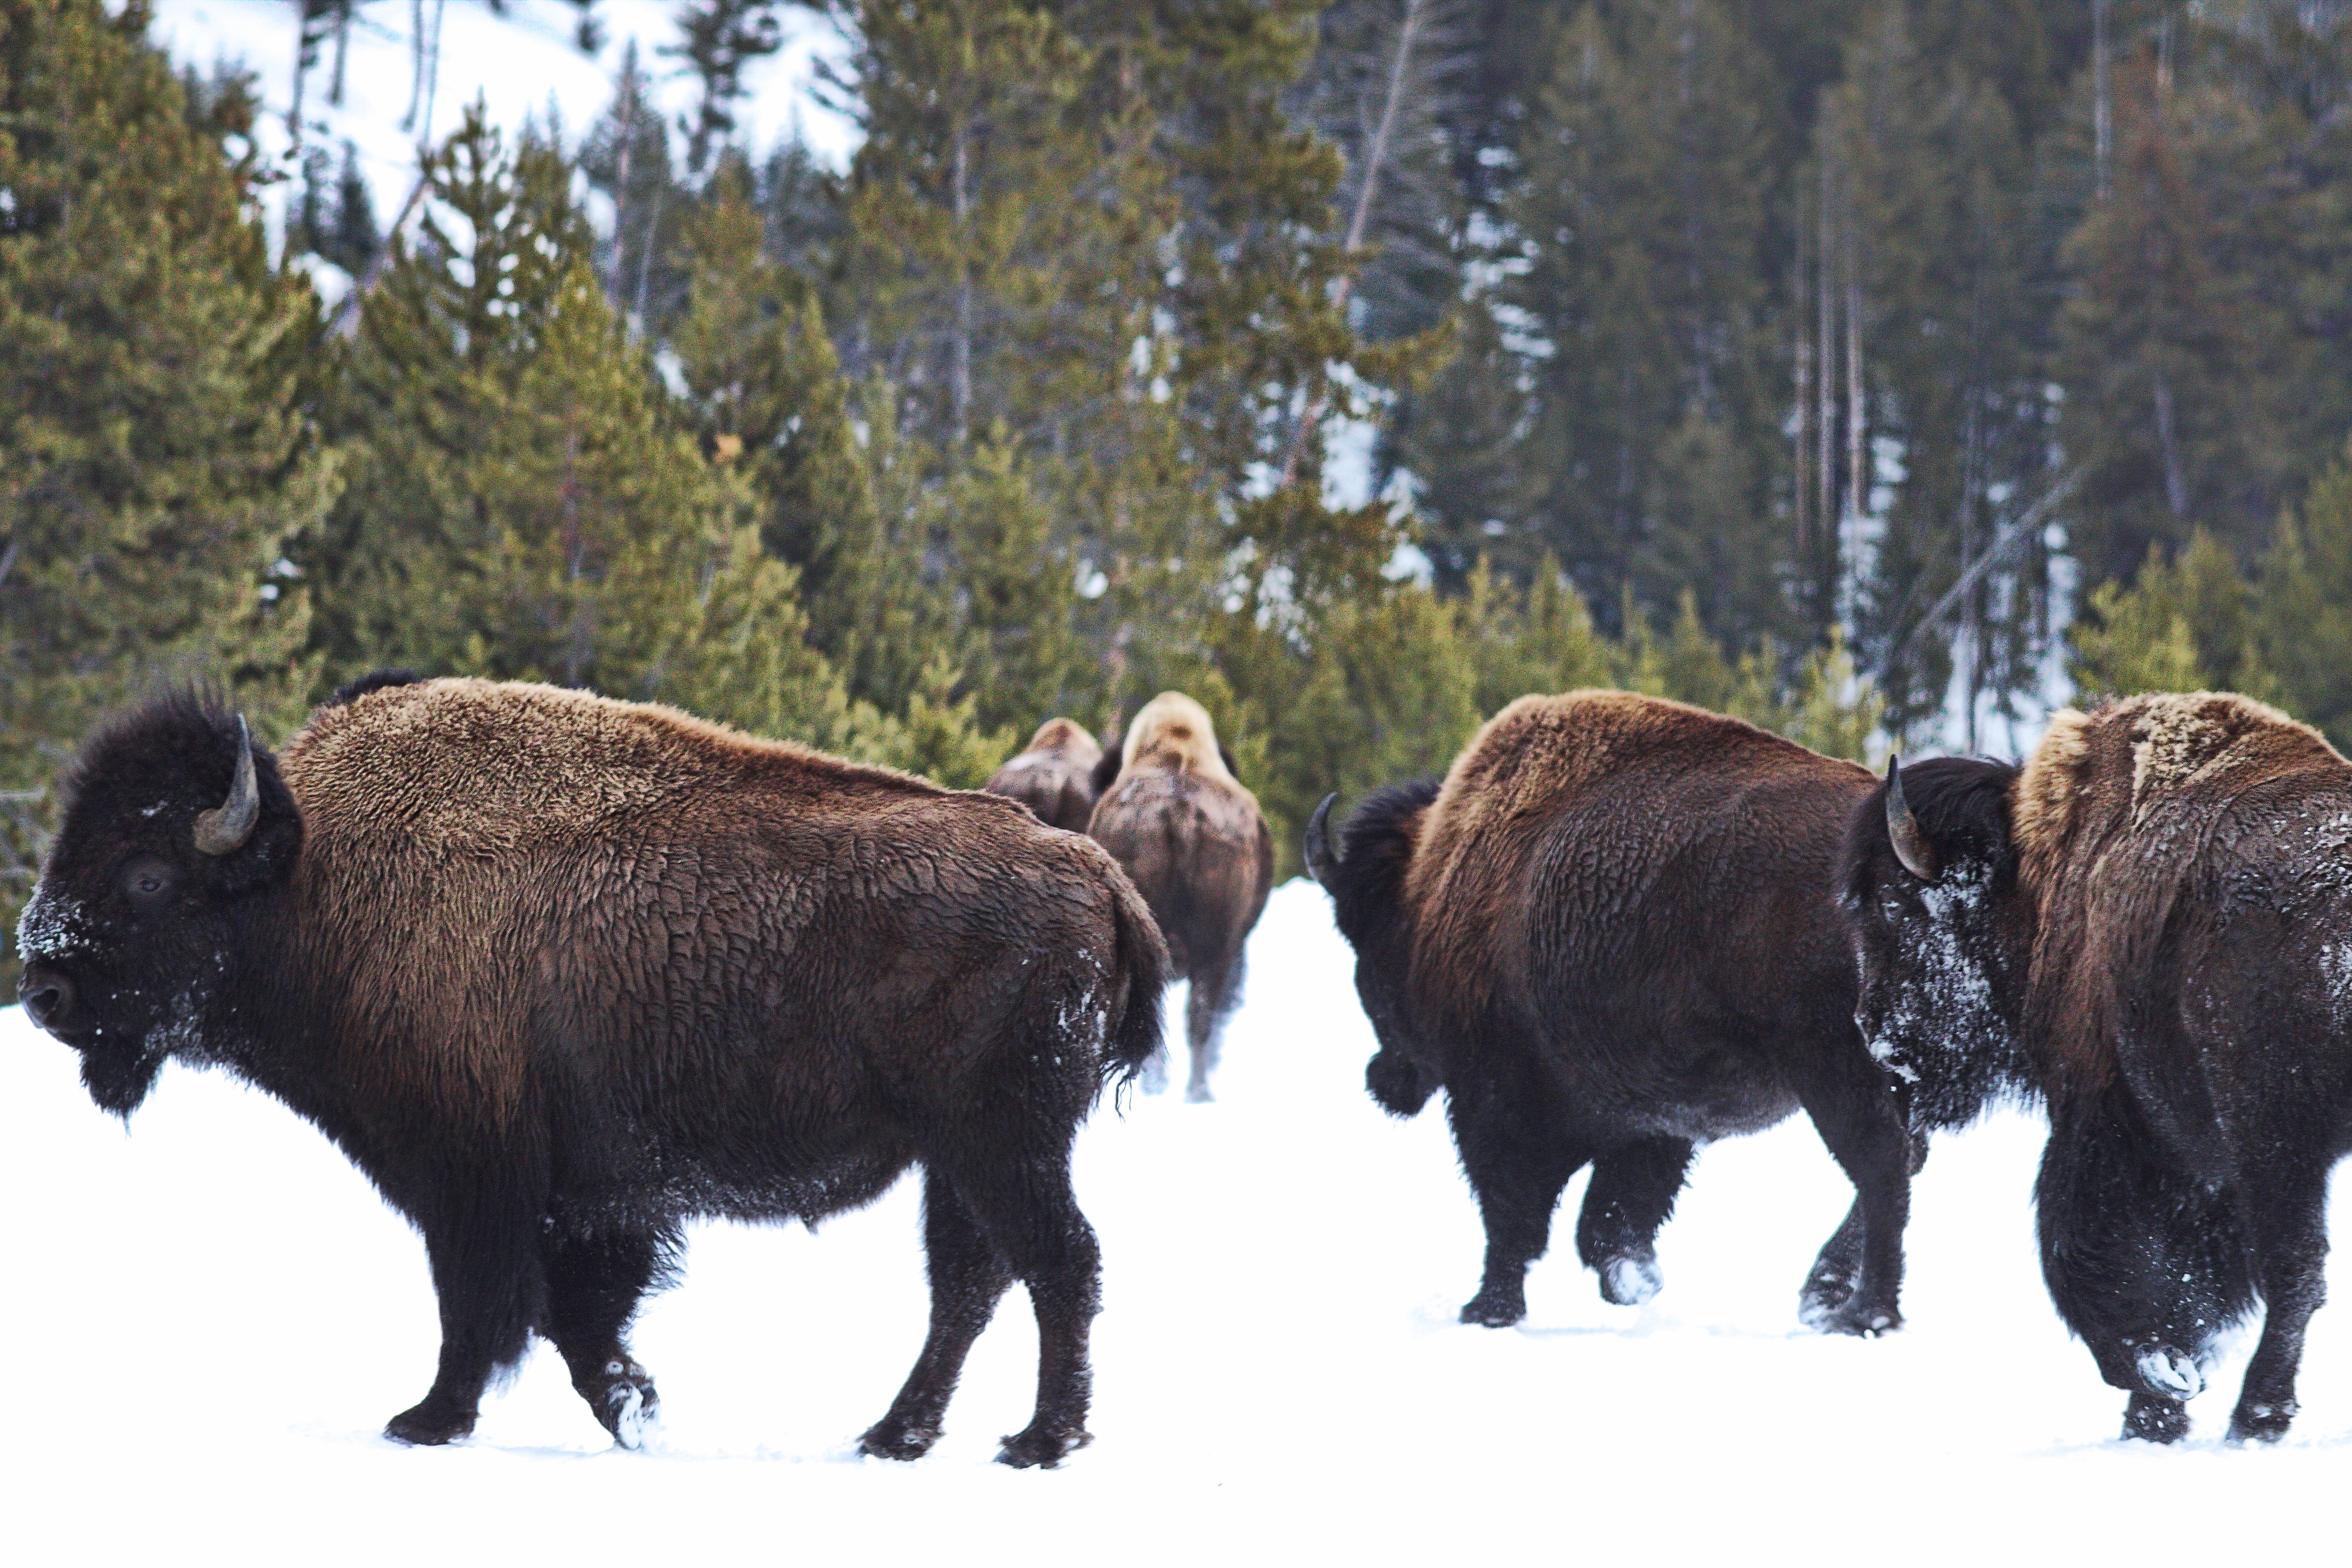 The American bison (Bison bison) is Wyoming's state mammal. Herd in Yellowstone National Park photographed on February 24, 2014.